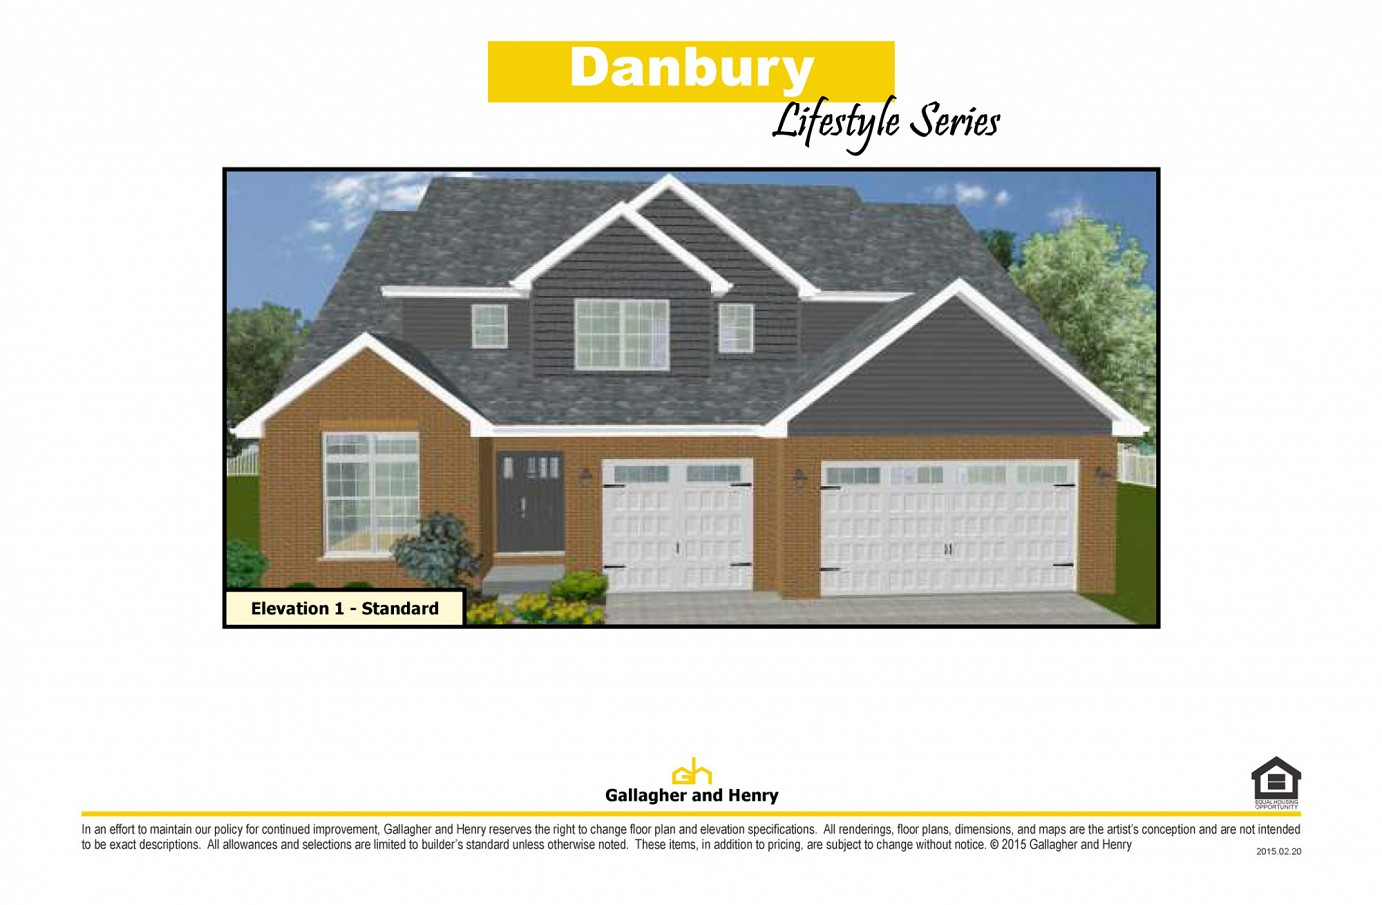 danbury-elevations_2.jpg